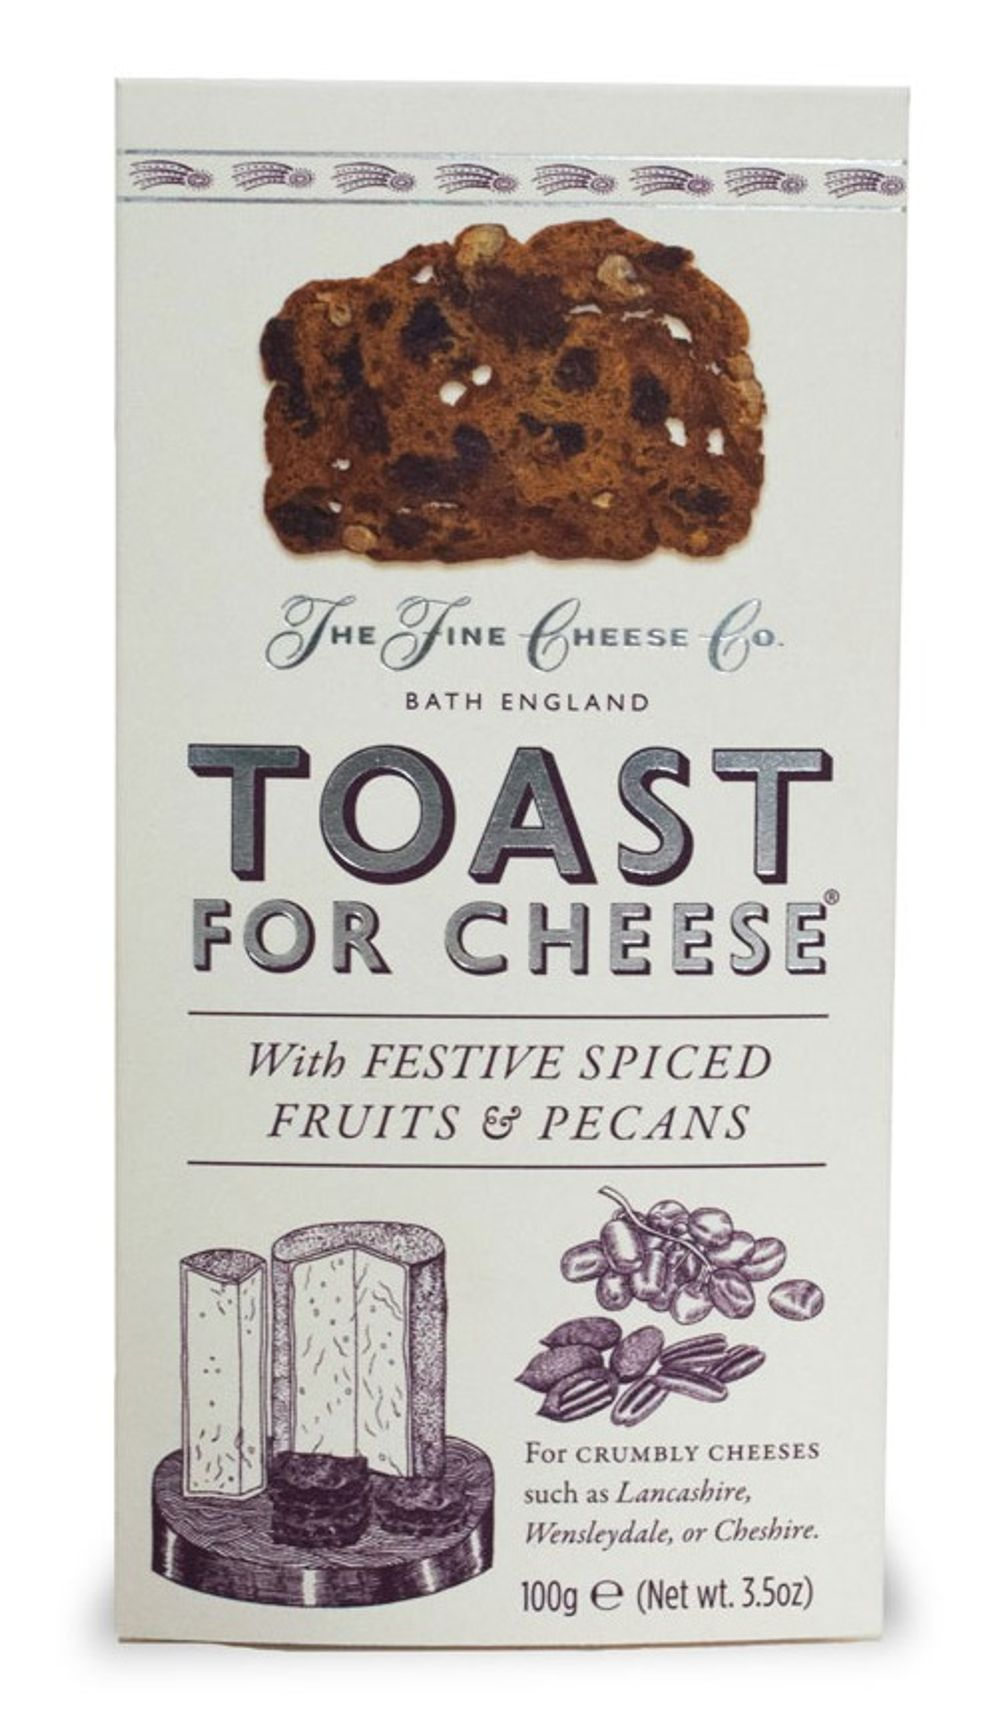 Festive Toast for Cheese